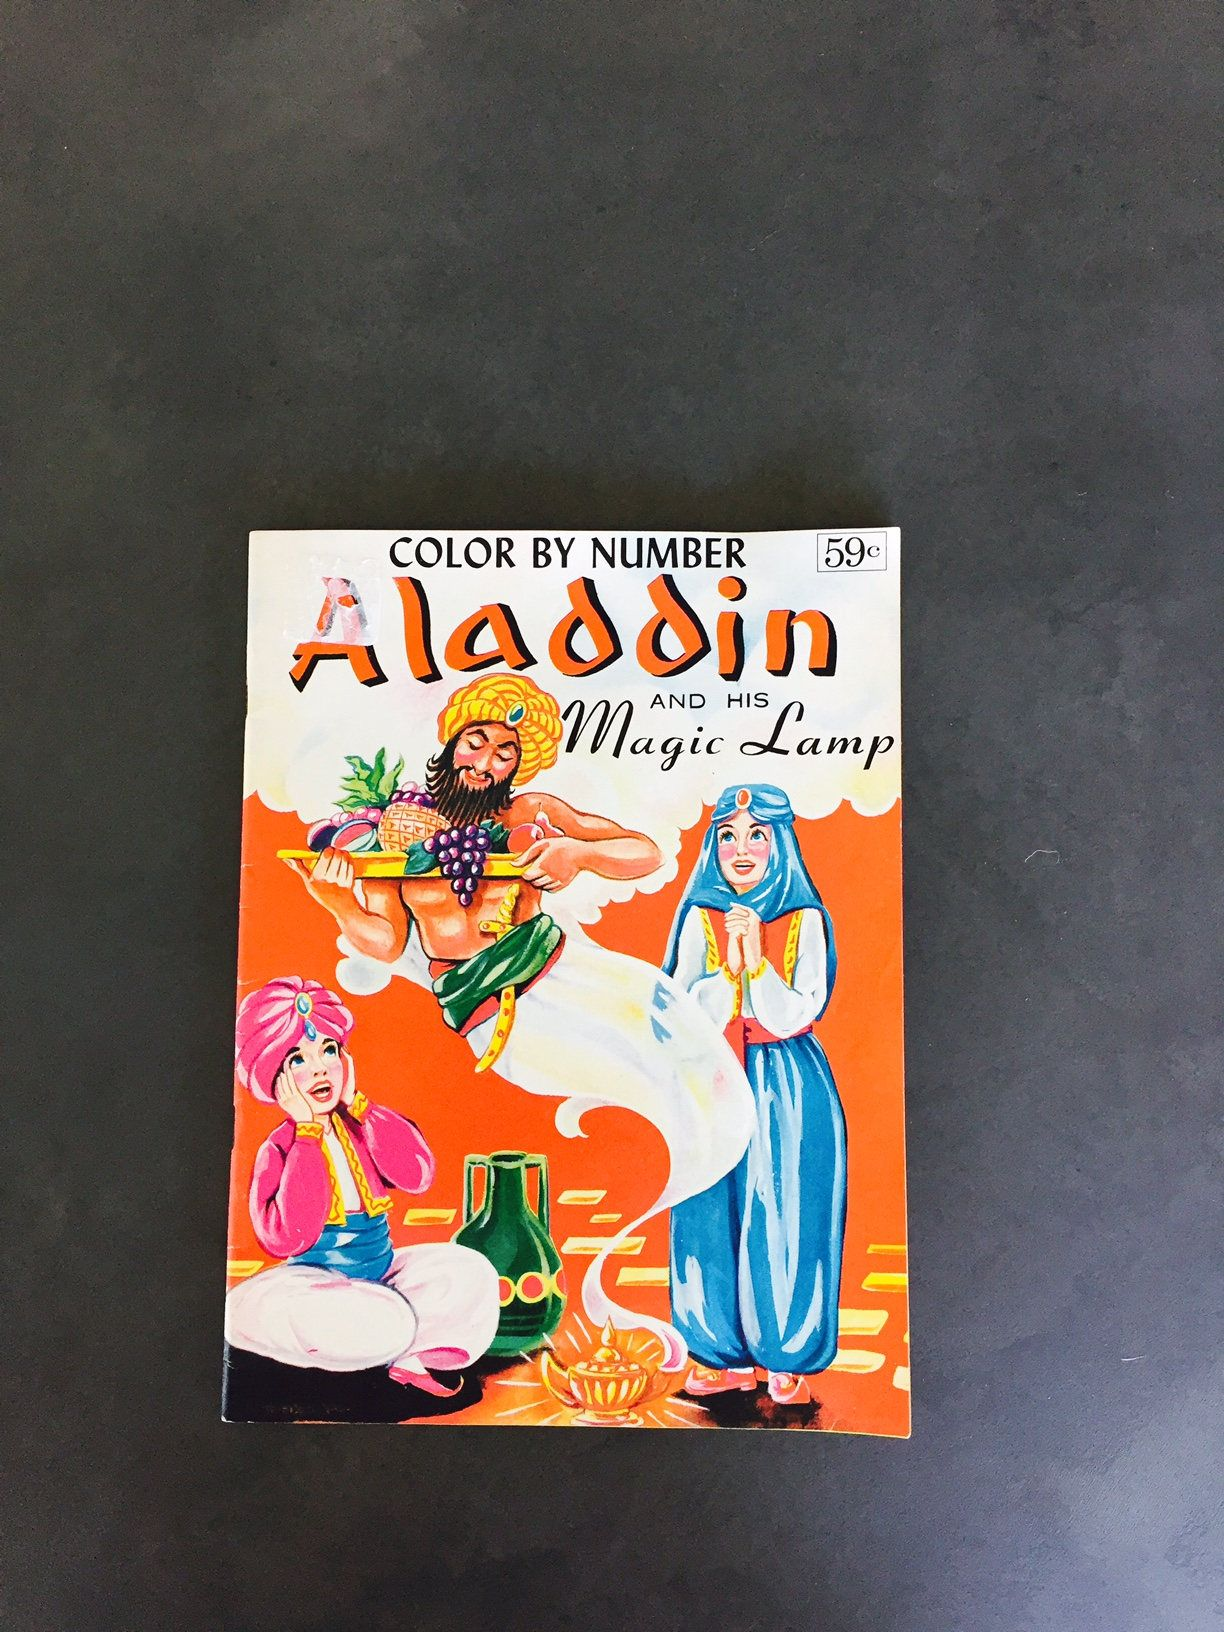 Vintage color by number aladdin and his magic lamp and story unused by missenpieces on etsy